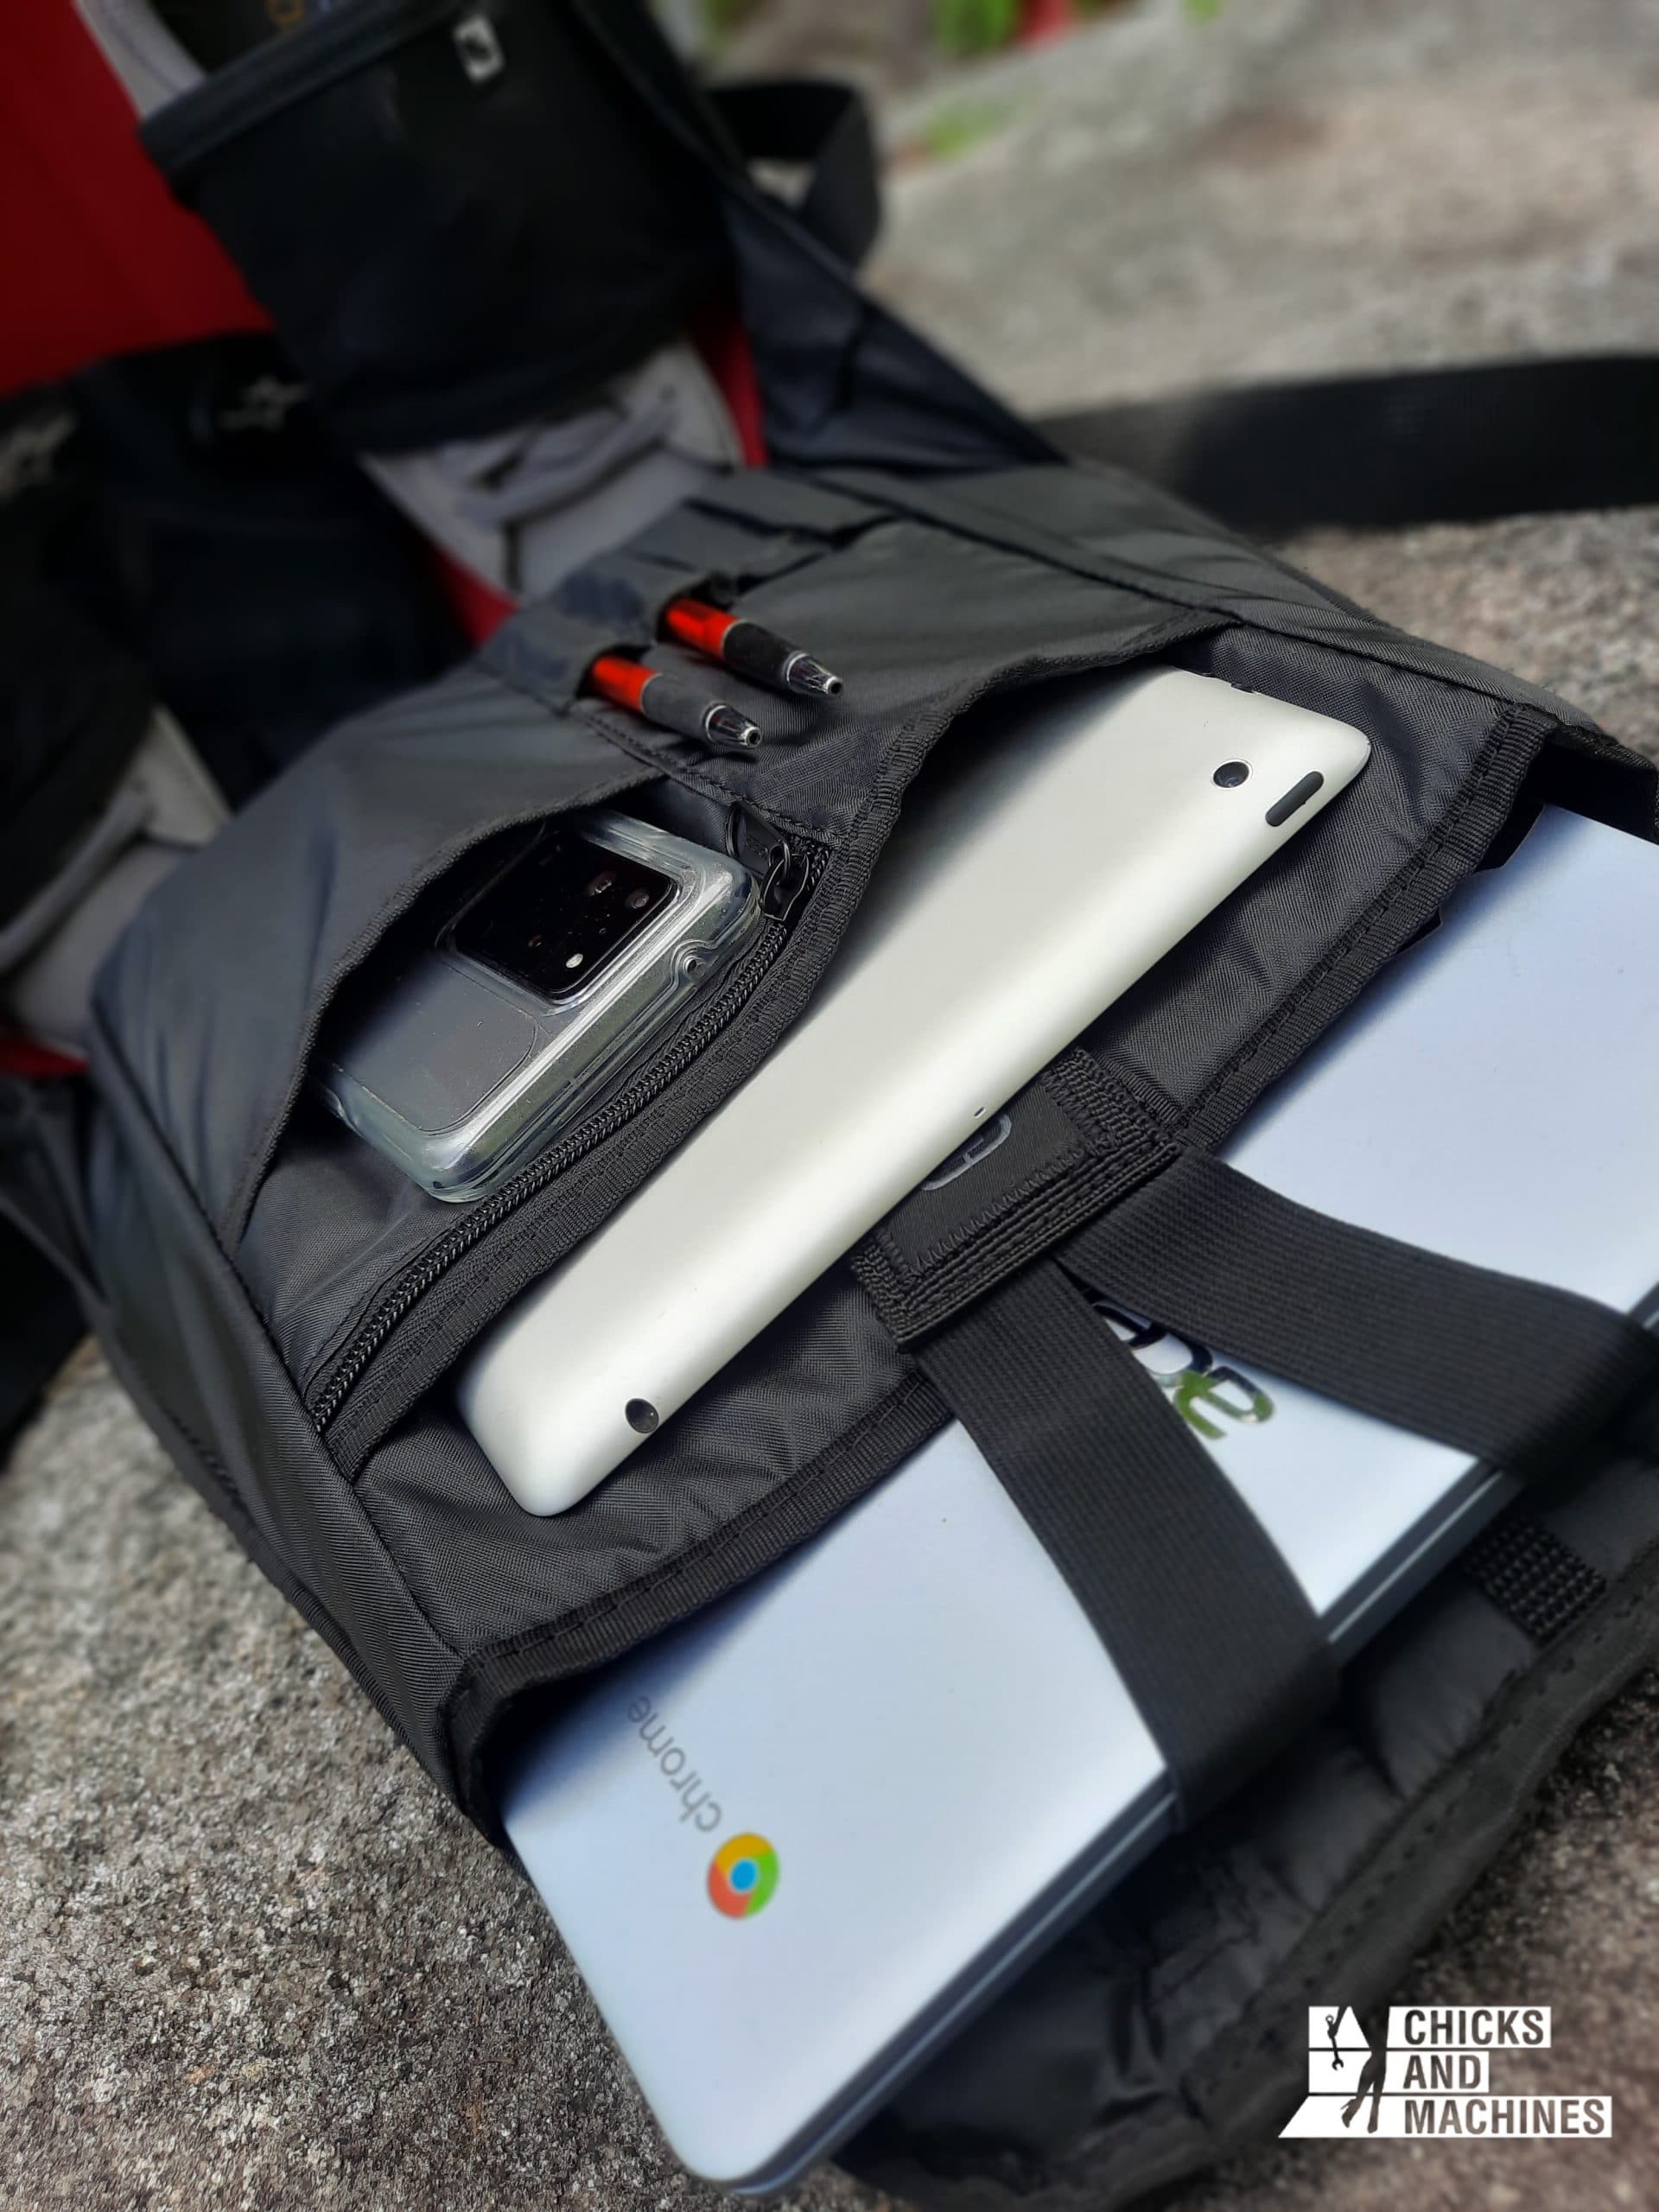 The practical interior storage of the OGIO Mach 3S LE